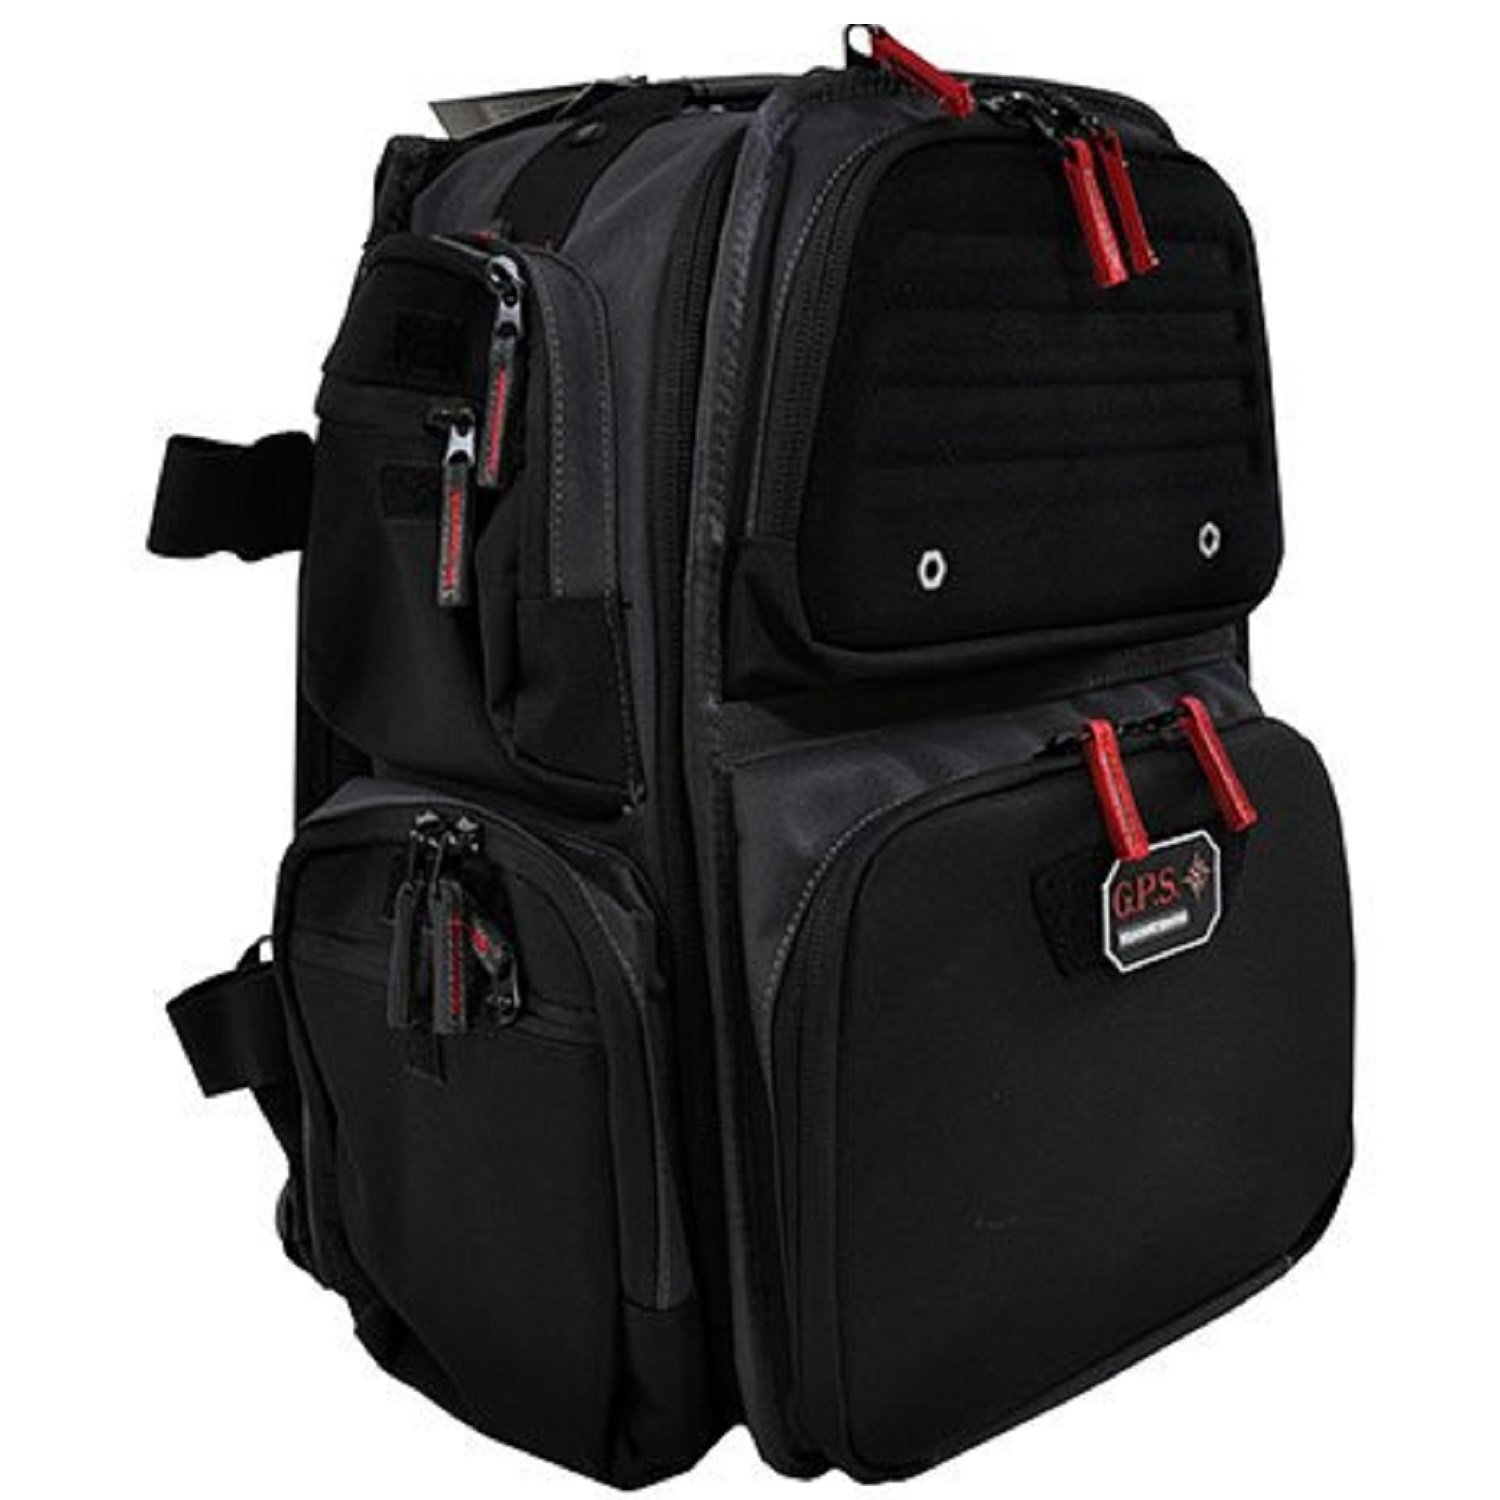 G.P.S. The Executive Backpack with Crackle for 5 Handguns, Gray